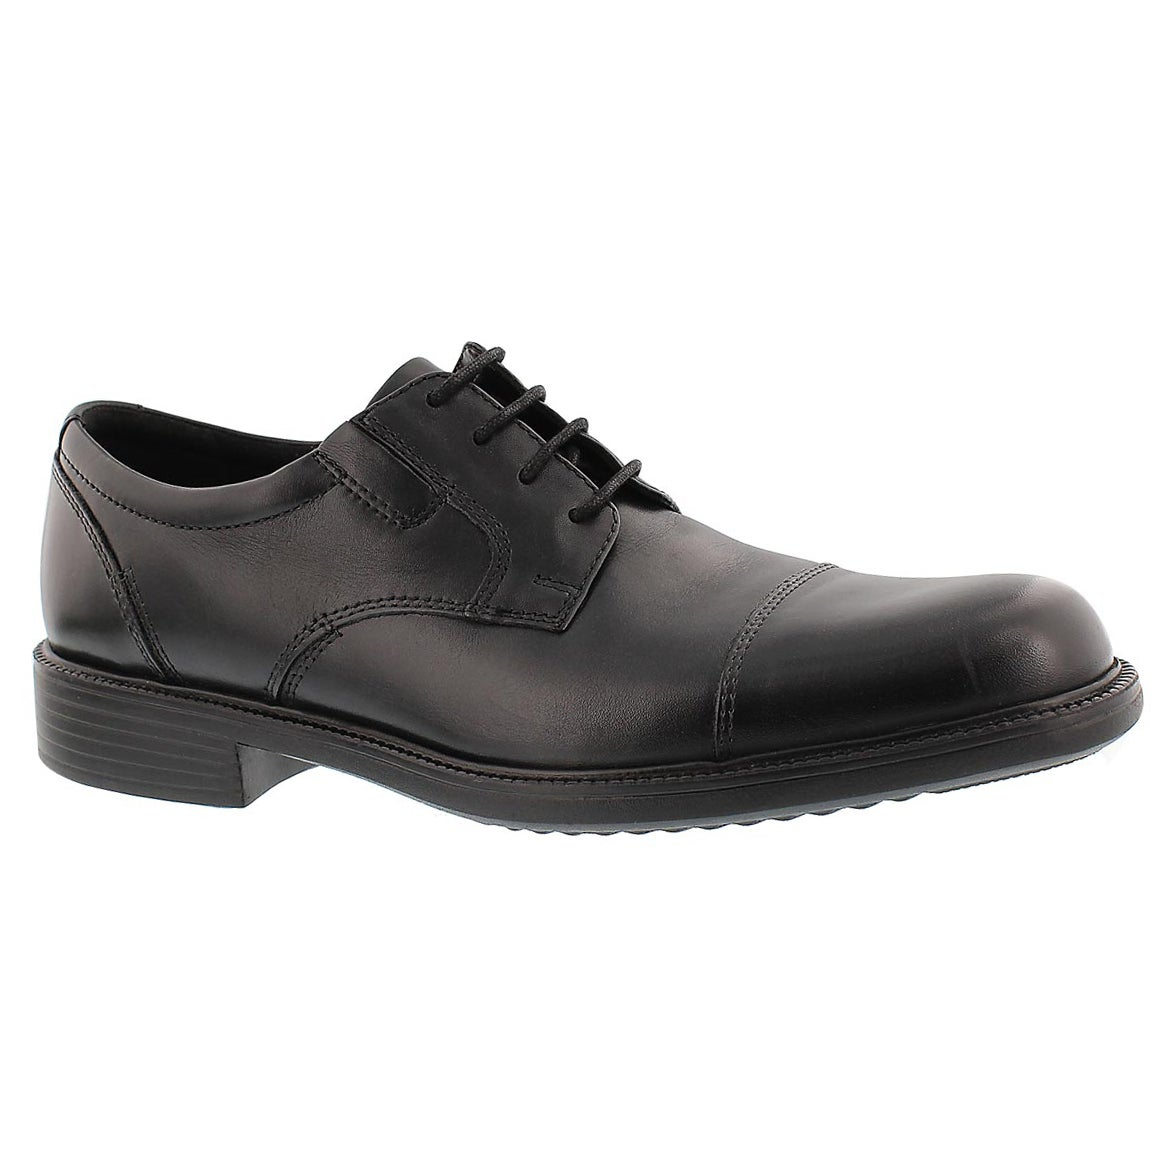 Mns Bardwell Limit blk Toe Cap Oxford